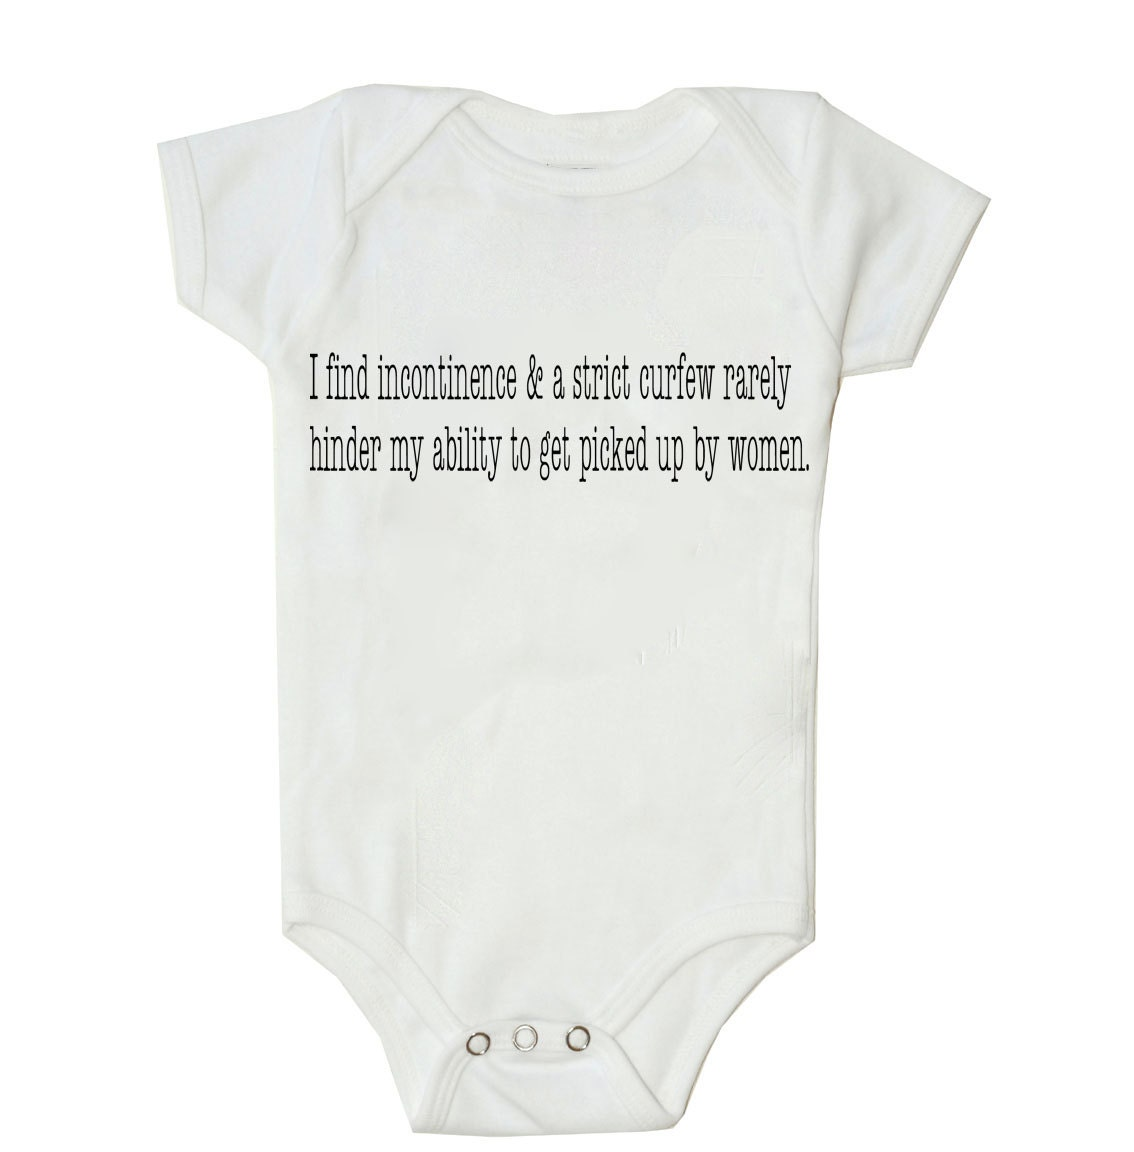 Incontinence and Strict Curfew Funny bodysuit or shirt for